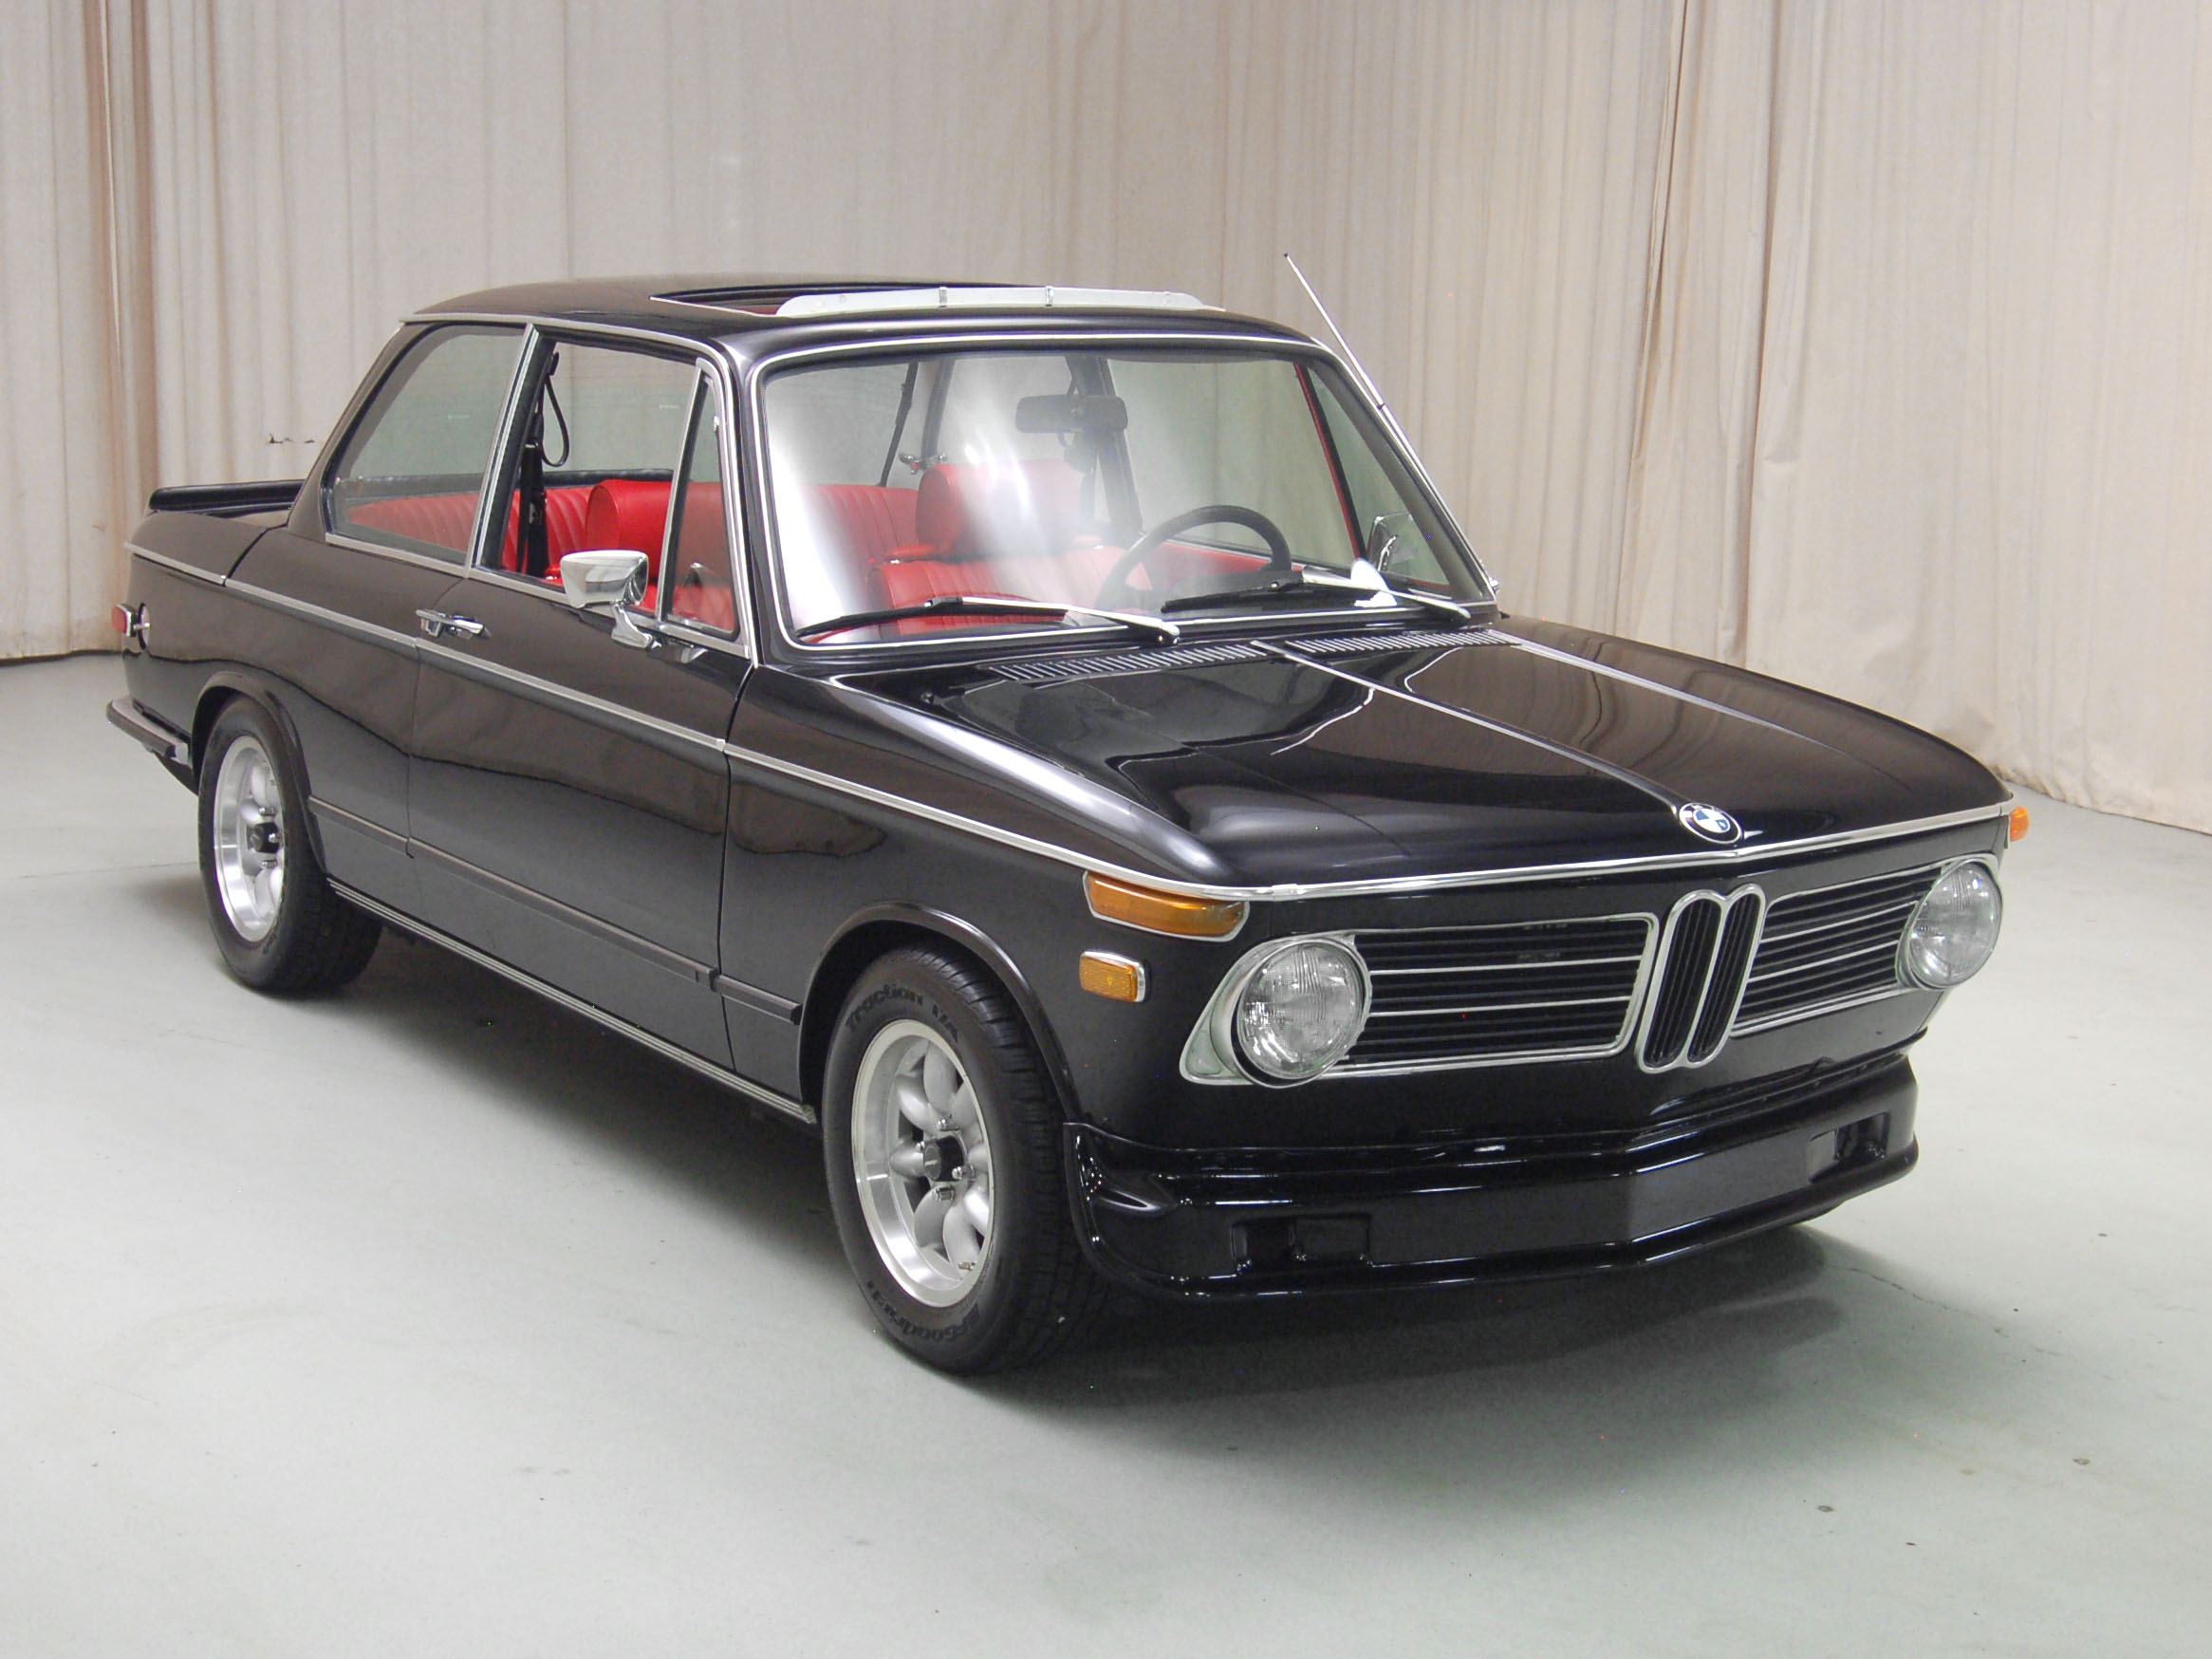 nostalgic wednesdays bmw 2002tii mayday garage. Black Bedroom Furniture Sets. Home Design Ideas